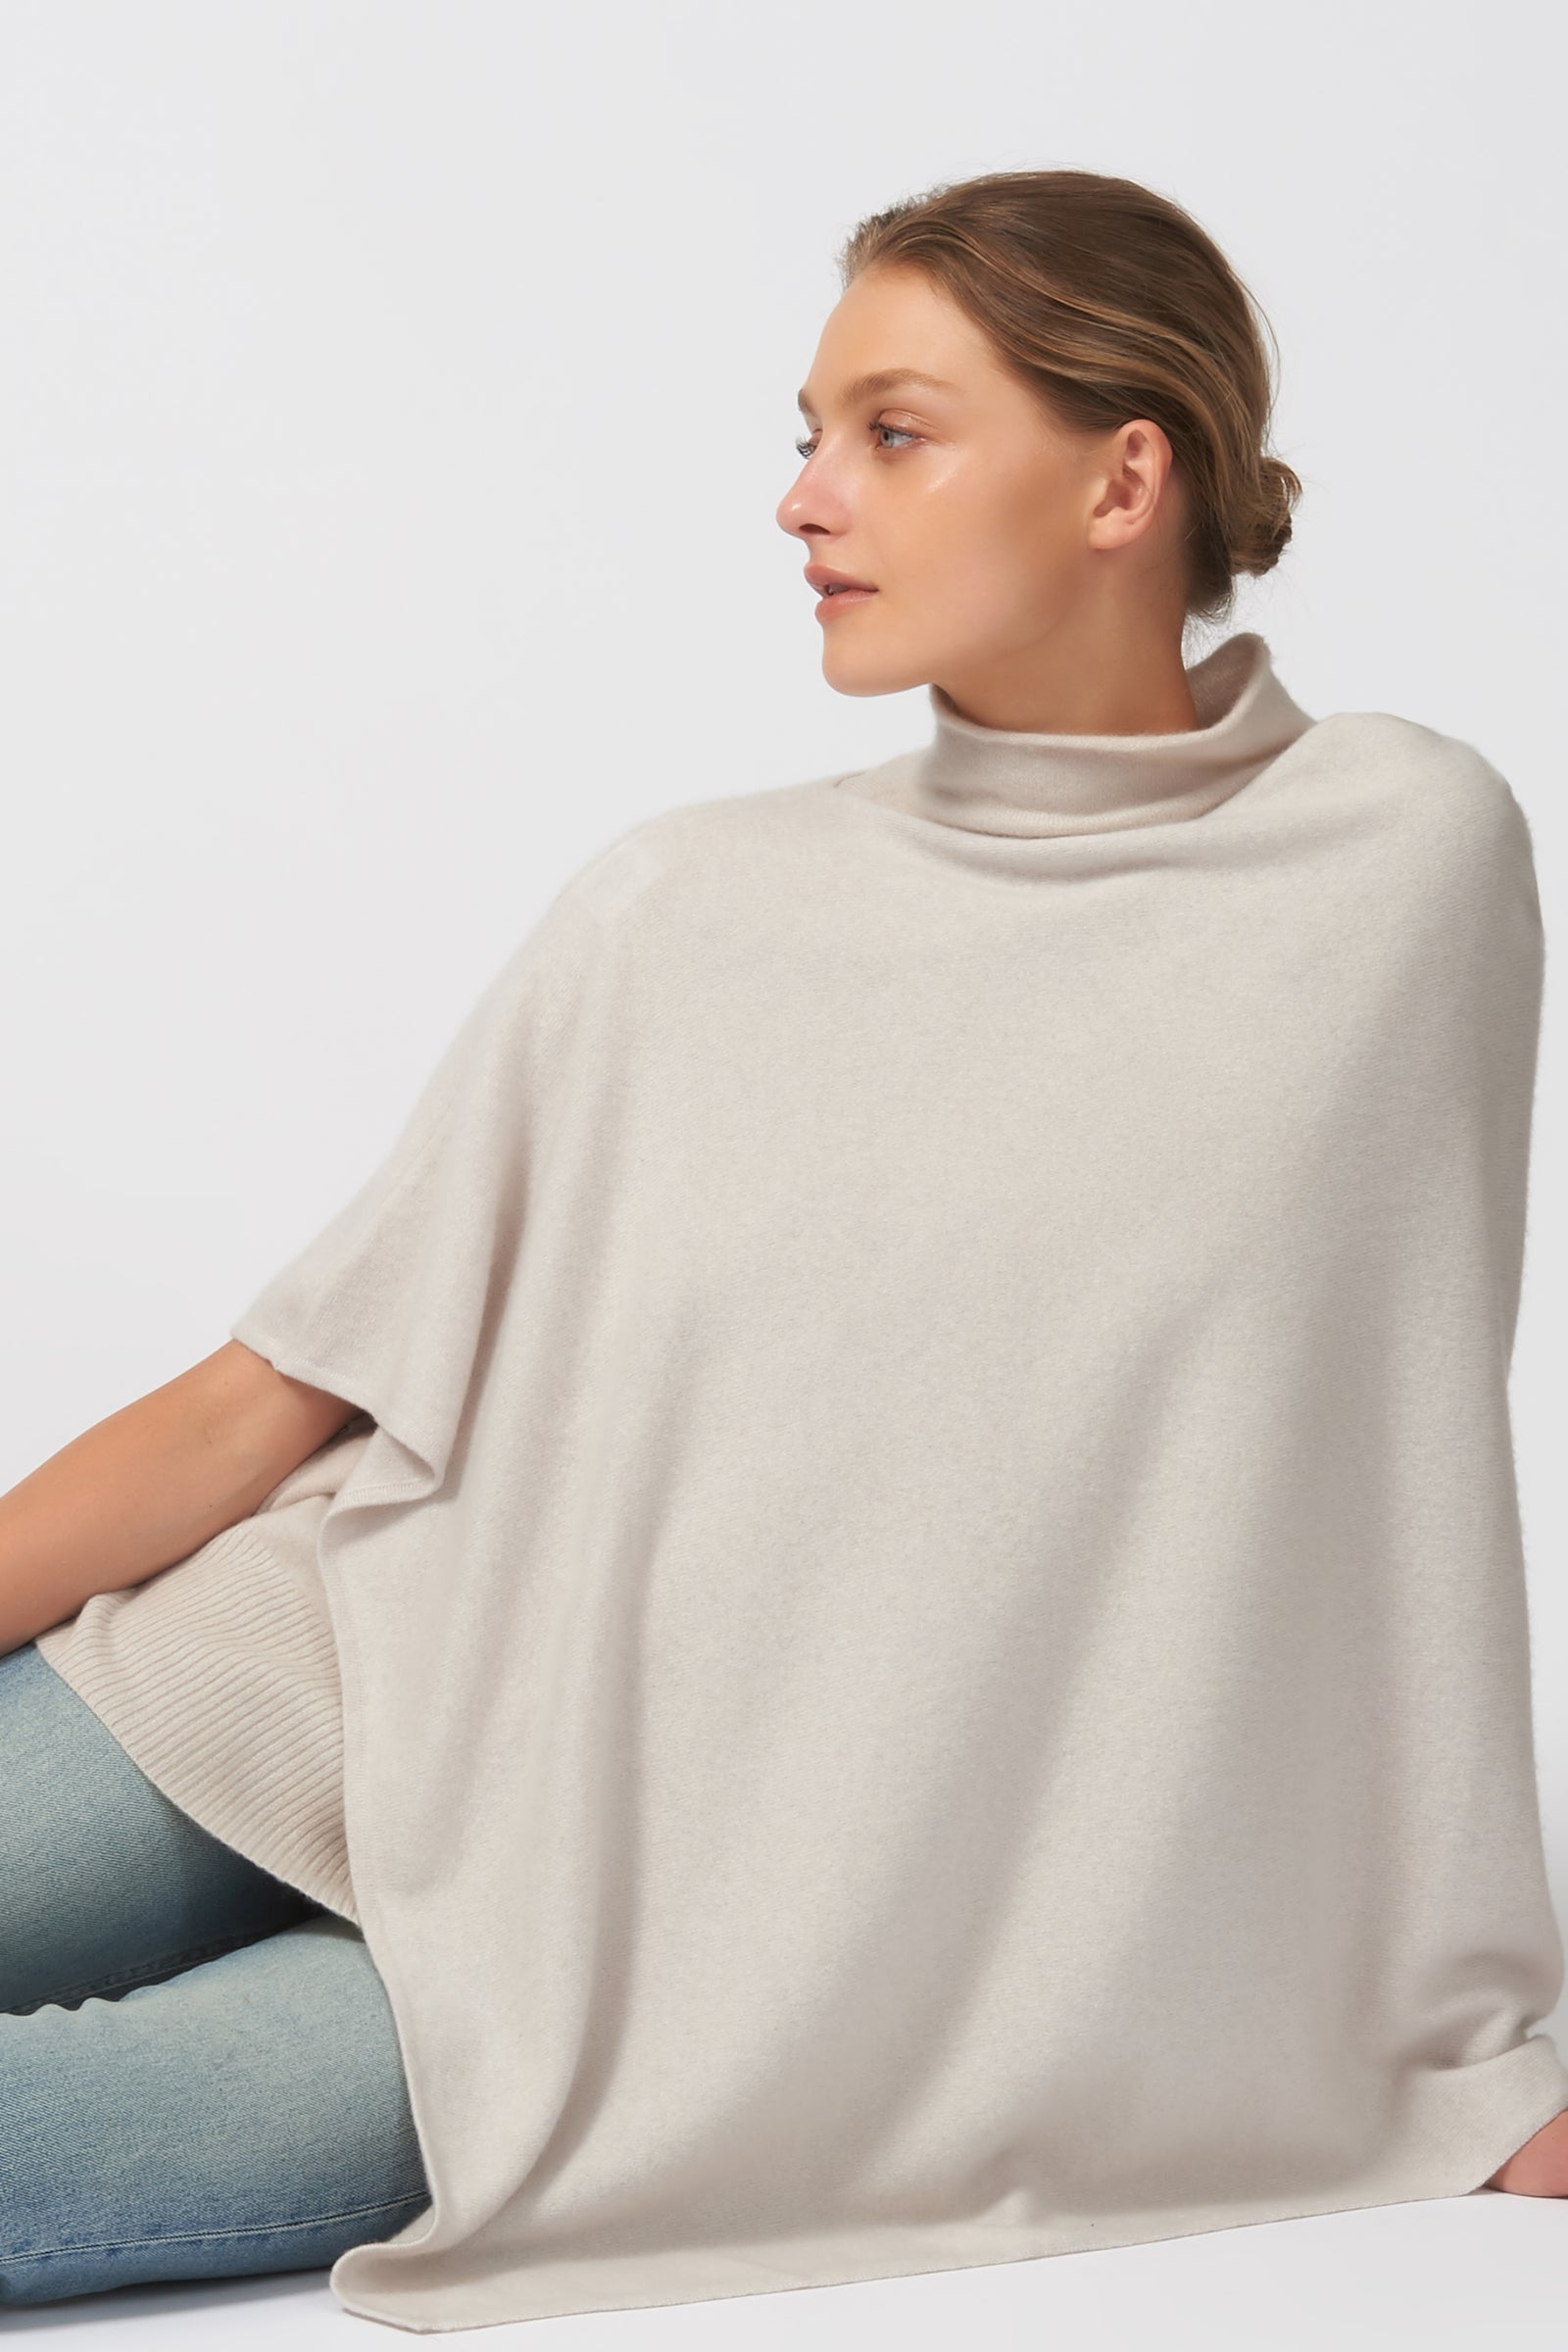 Kal Rieman Cashmere Poncho in Haze on Model Detail View